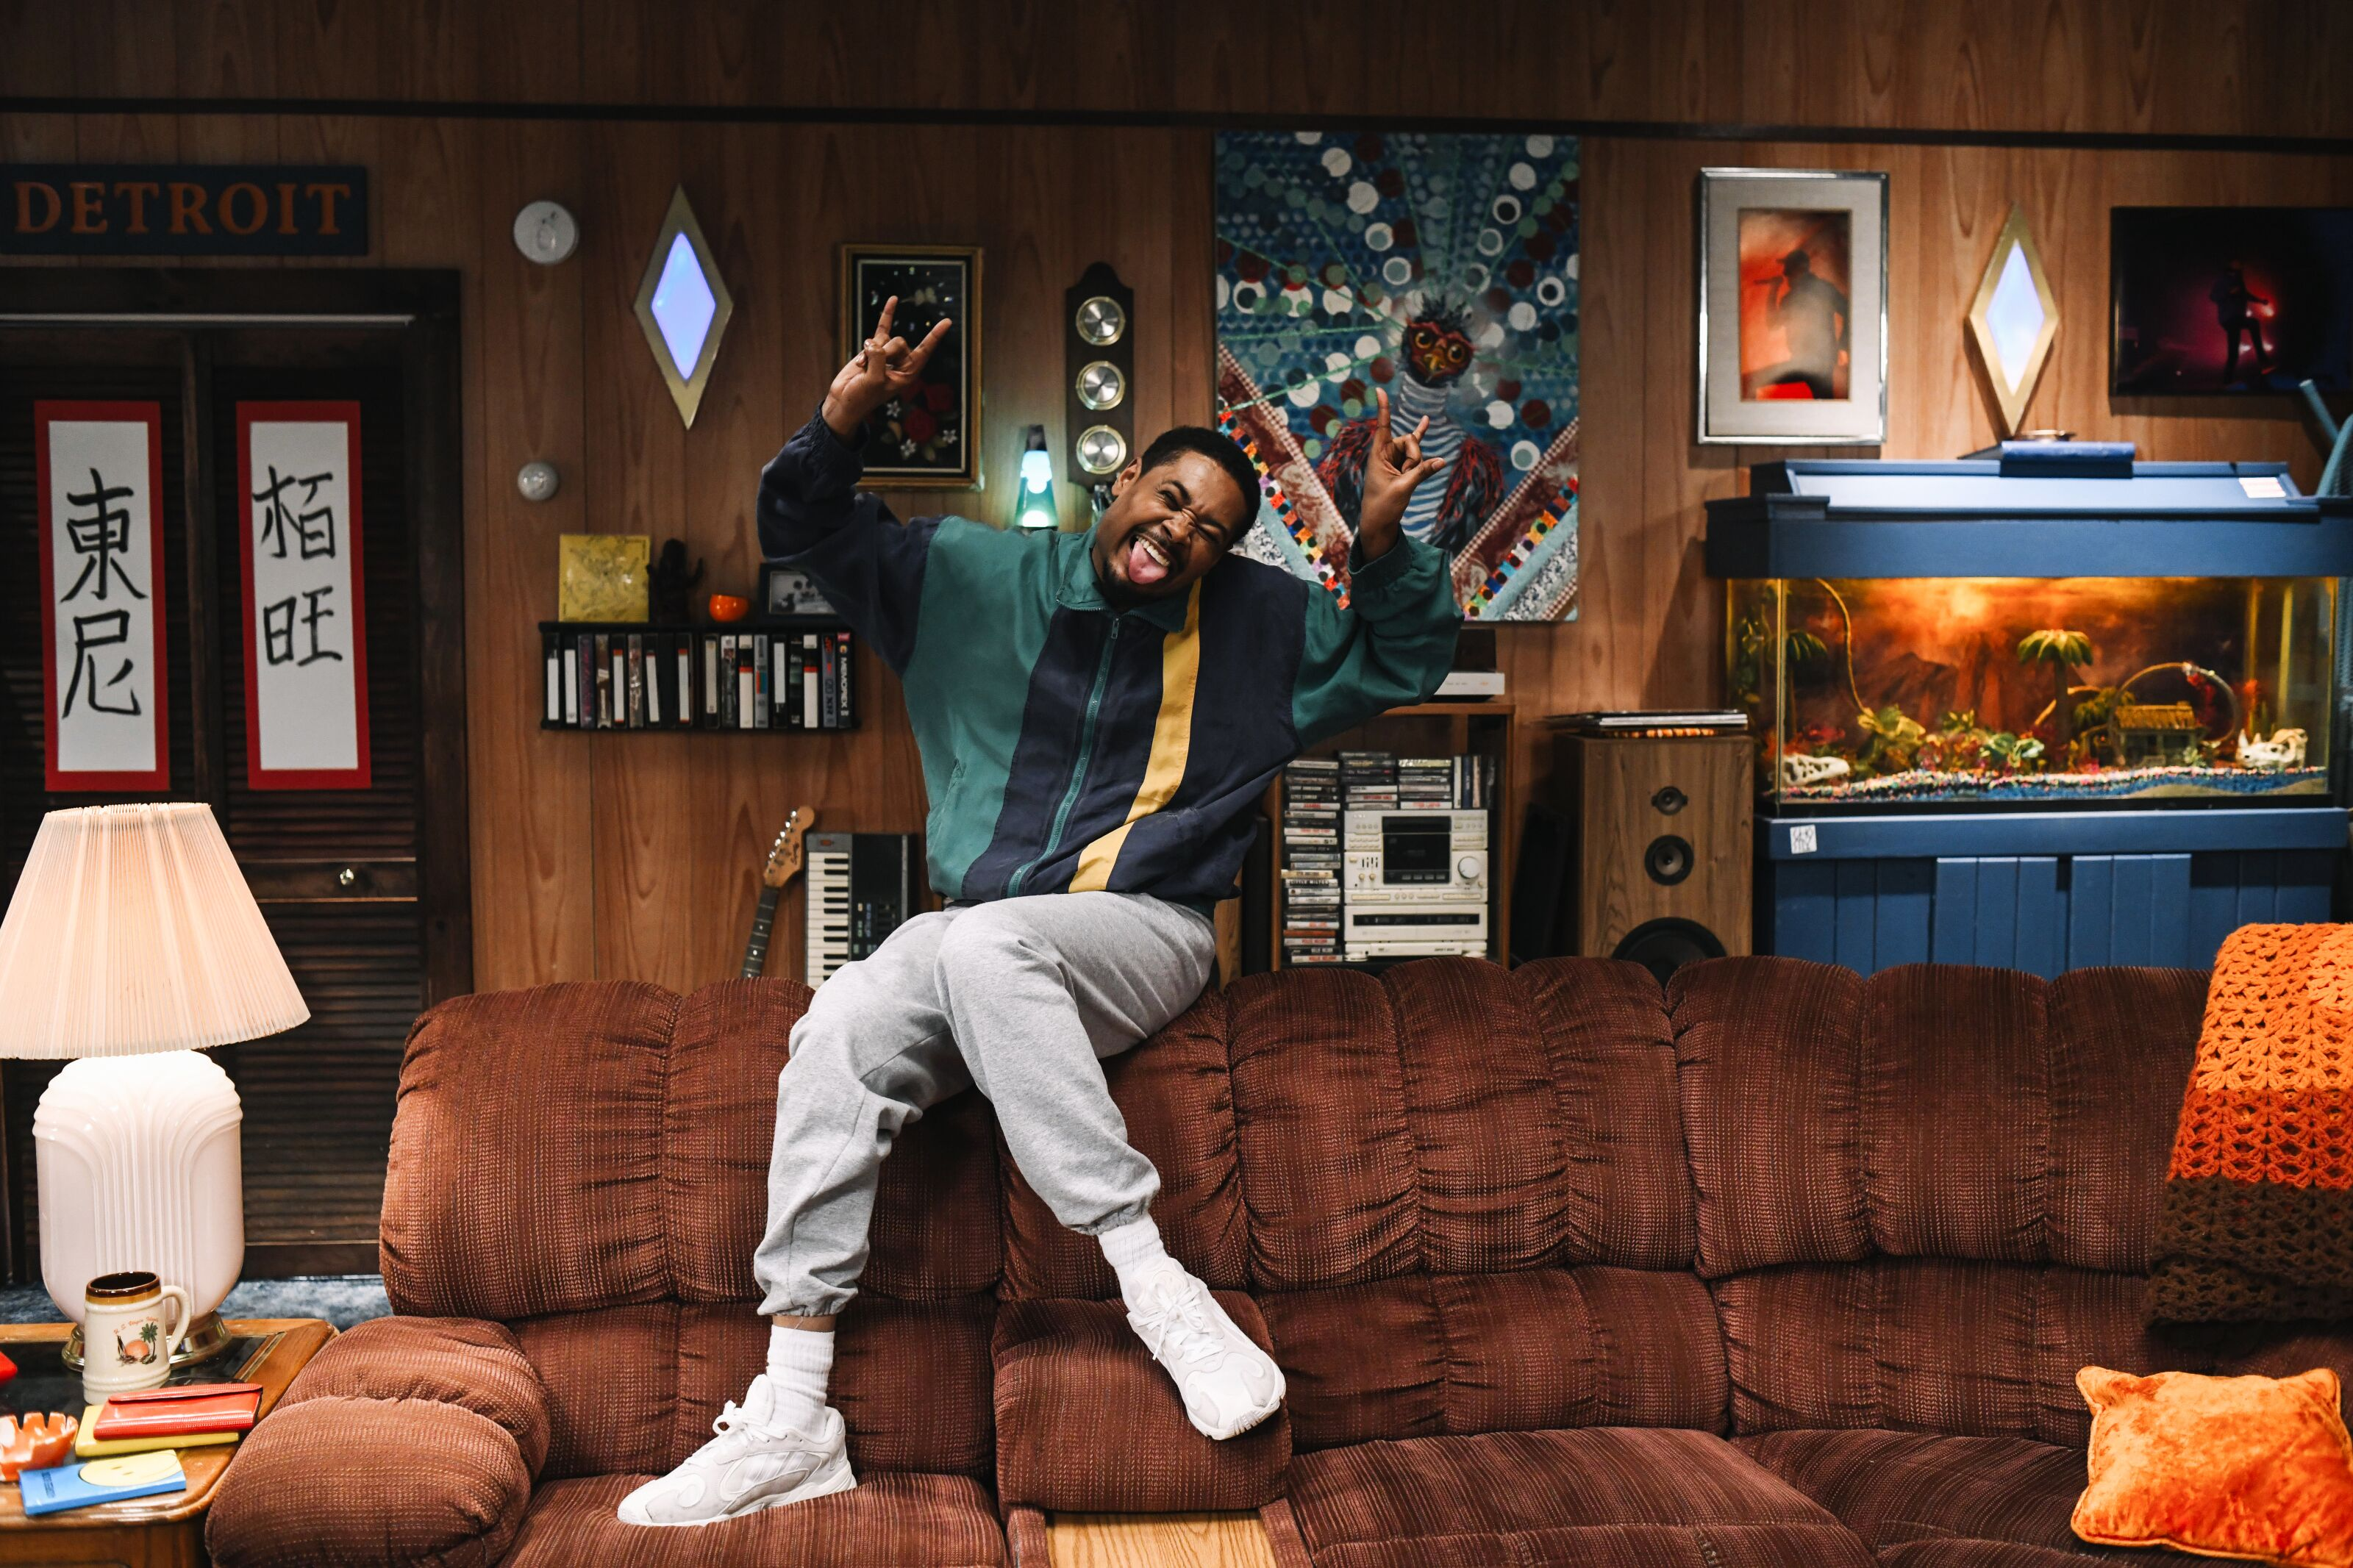 Season 1 of Danny's House is now available on demand on Viceland